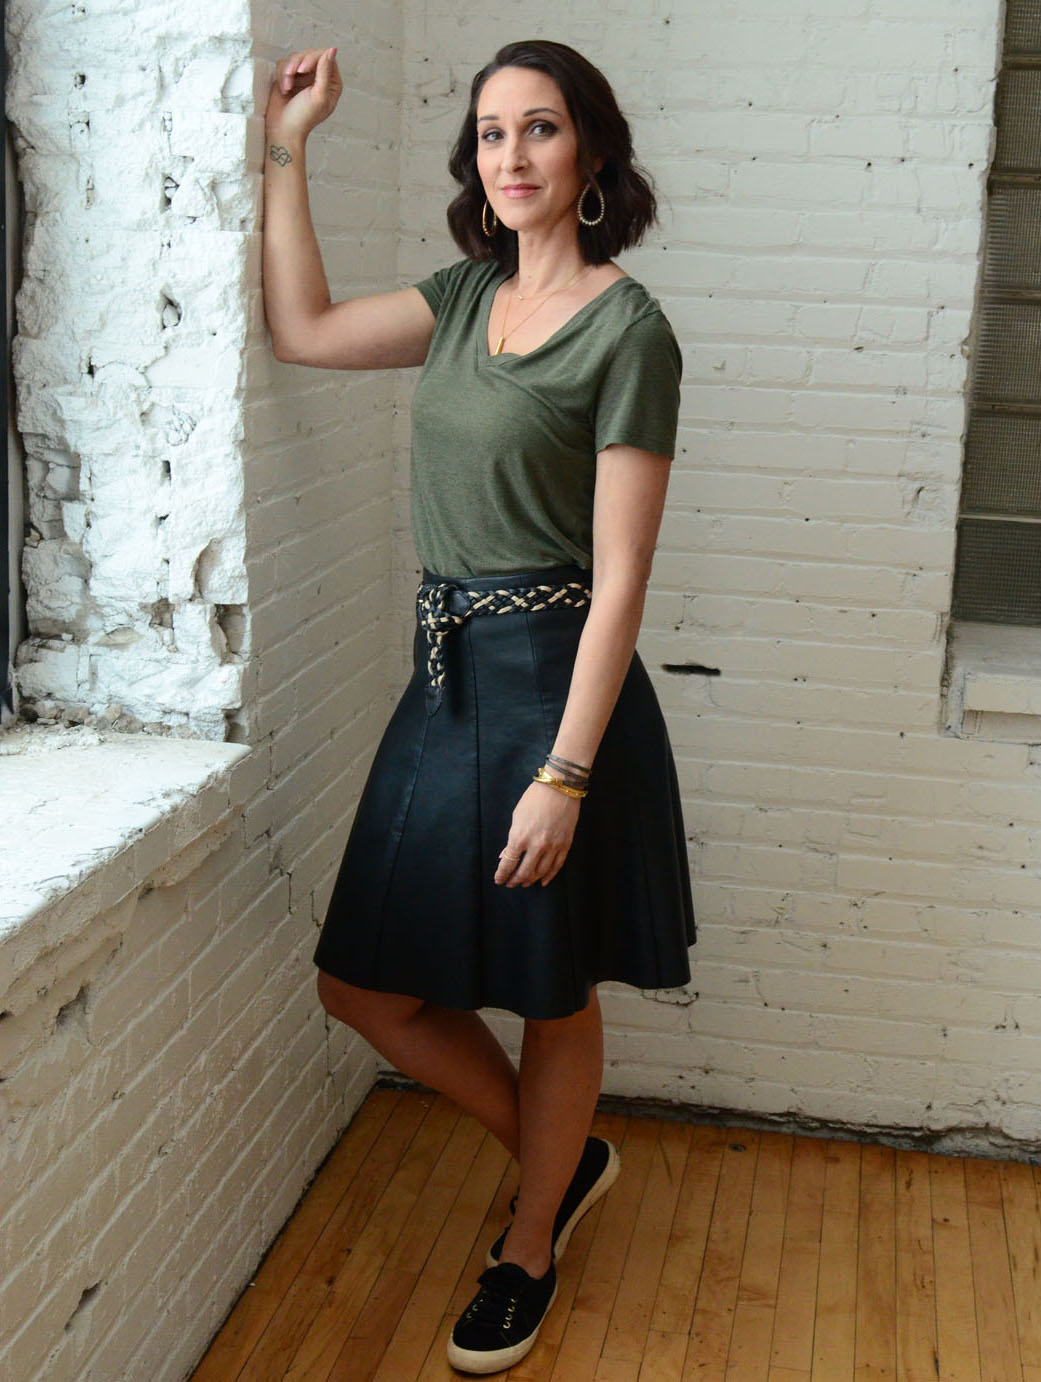 women-i-work-with-kristin-schroeder-black-leather-skirt-olive-tee-sneakers